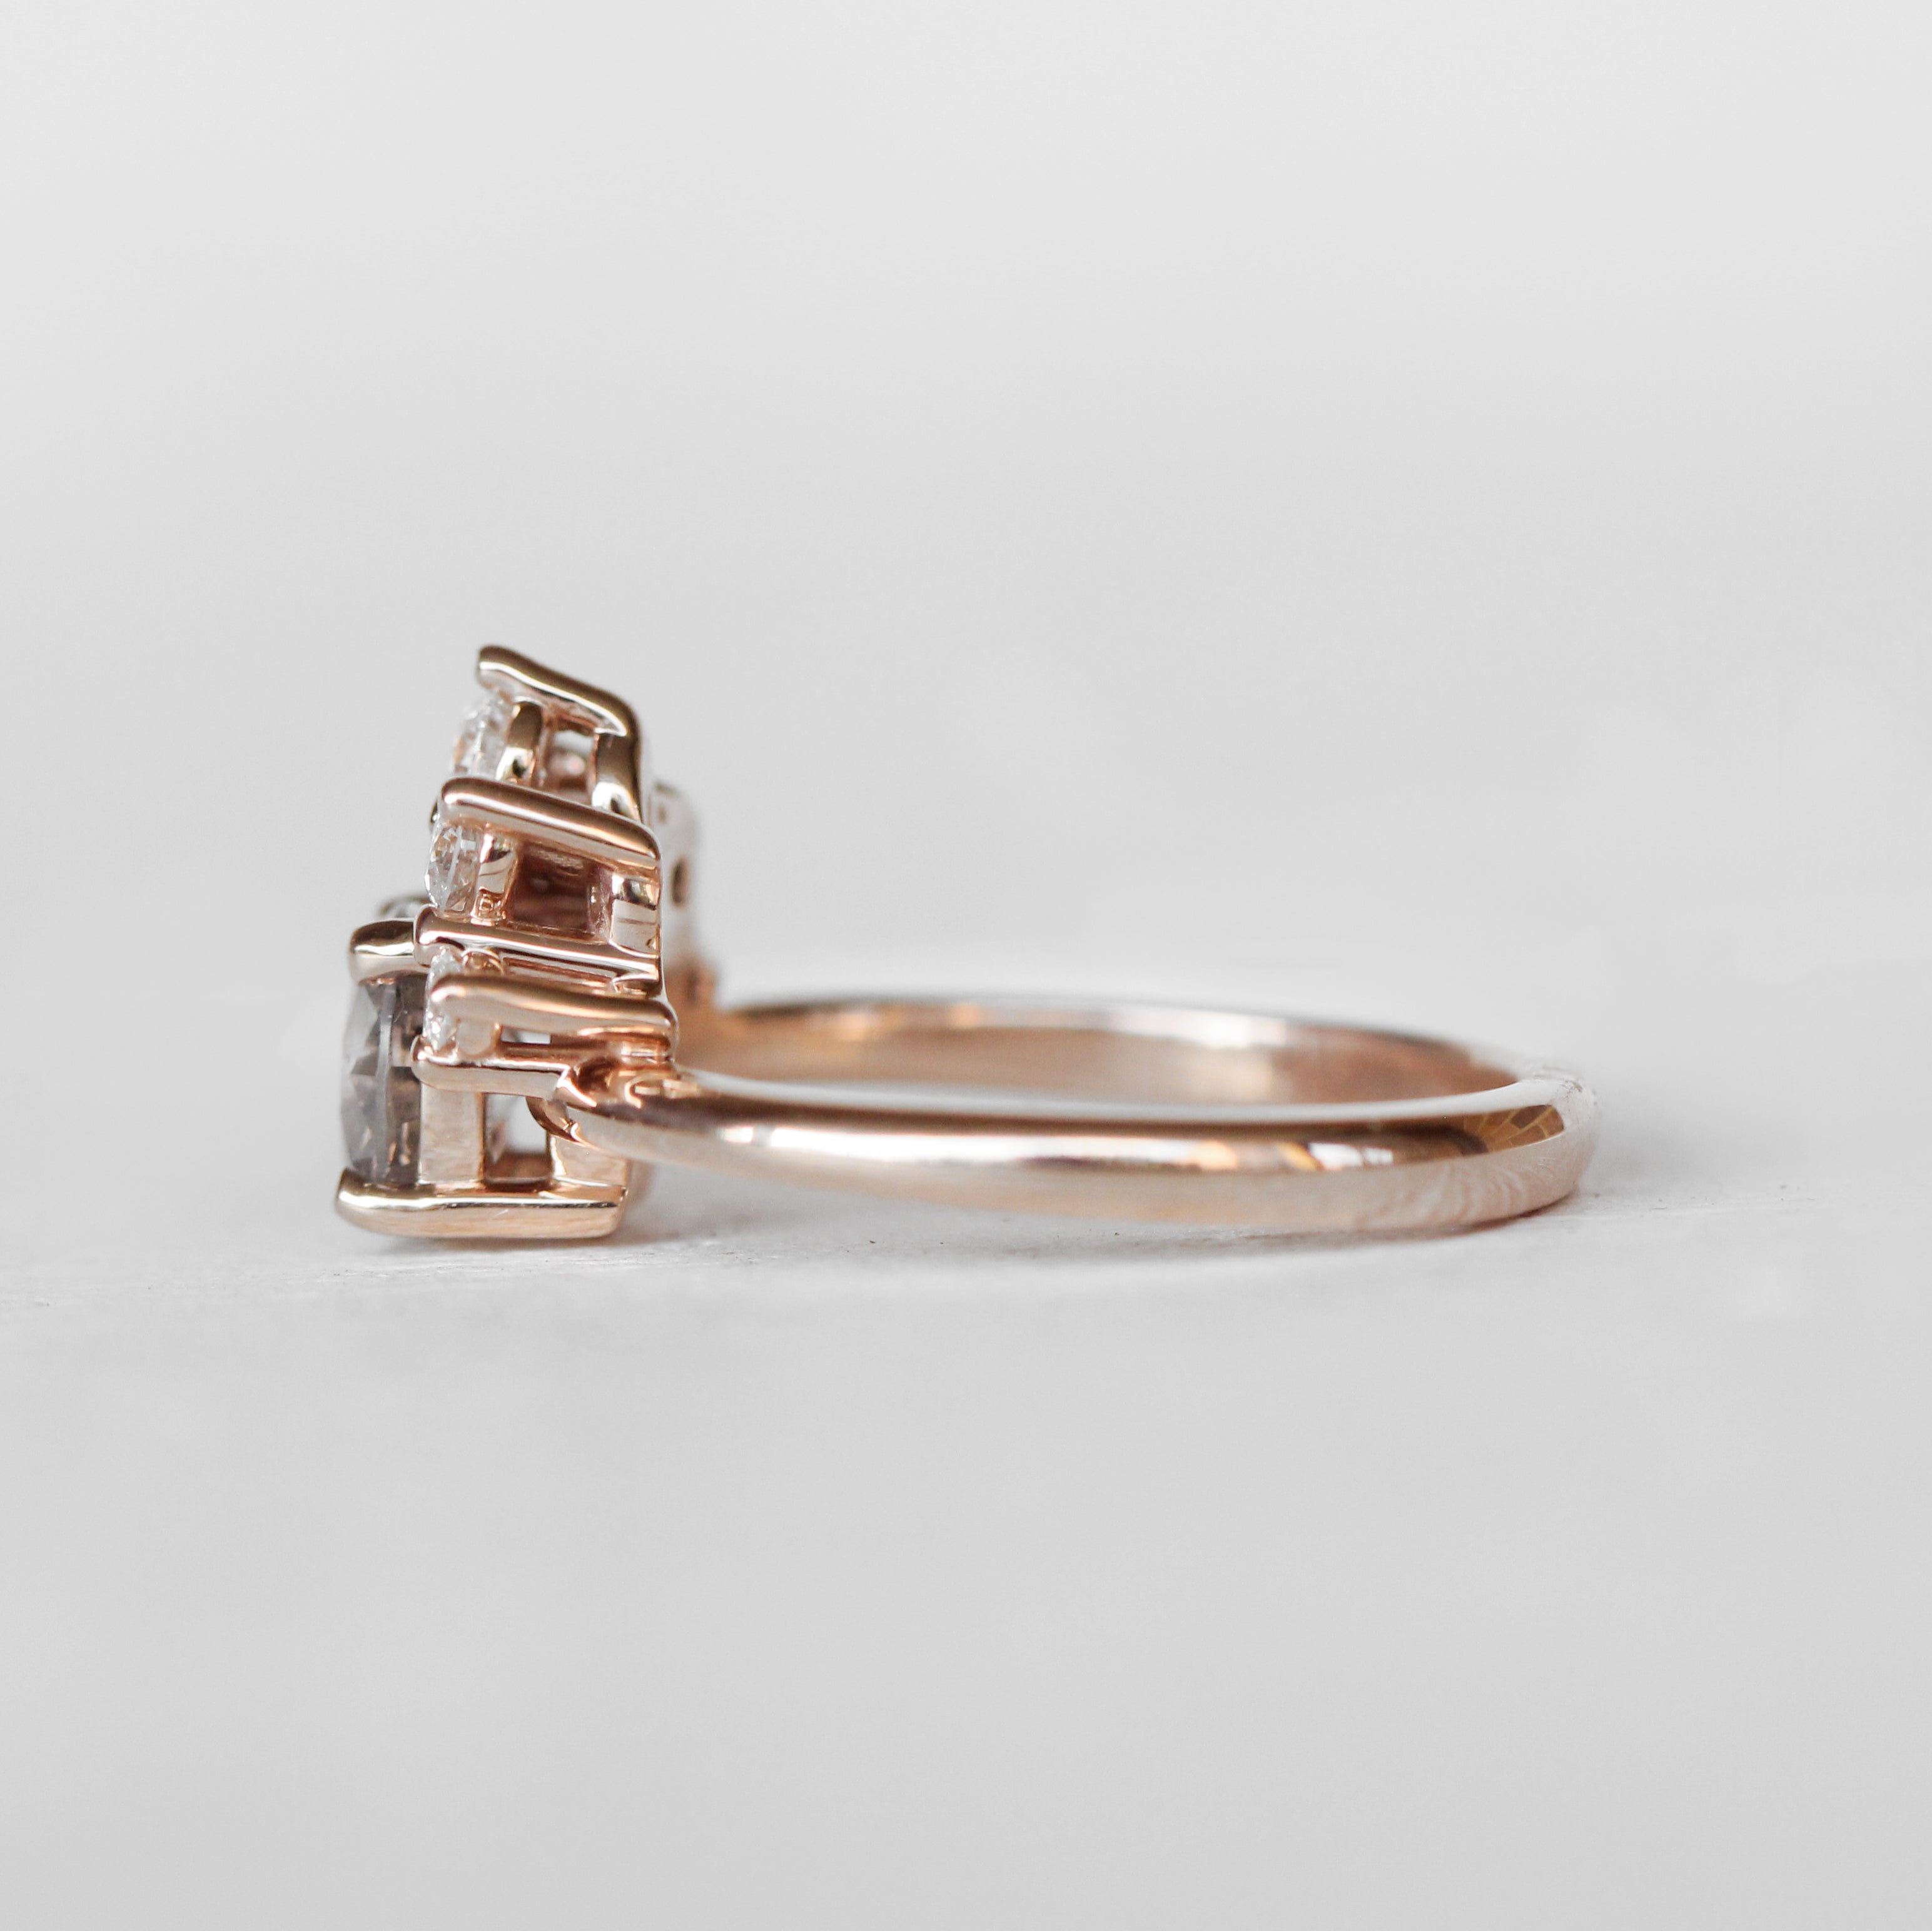 Bethany Ring + Band SET with a center 1.06 carat Celestial Diamond in 10k Rose Gold - Ready to Size and Ship - Salt & Pepper Celestial Diamond Engagement Rings and Wedding Bands  by Midwinter Co.